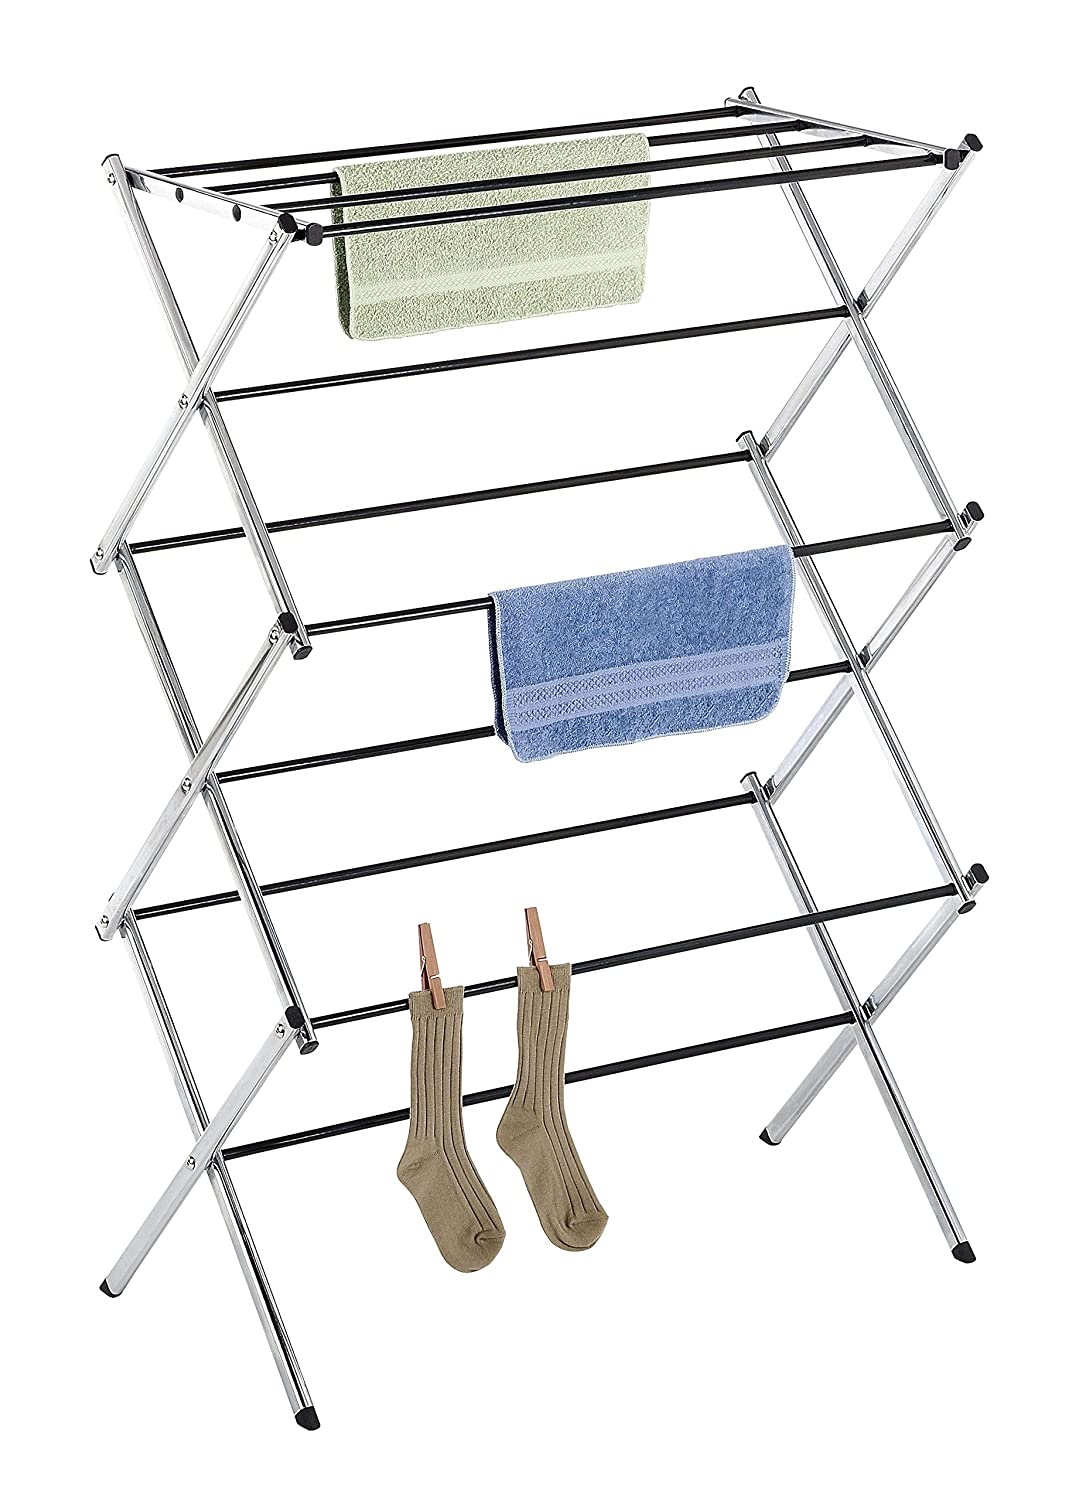 crate reviews folding and hero wid web product large rack drying hei barrel